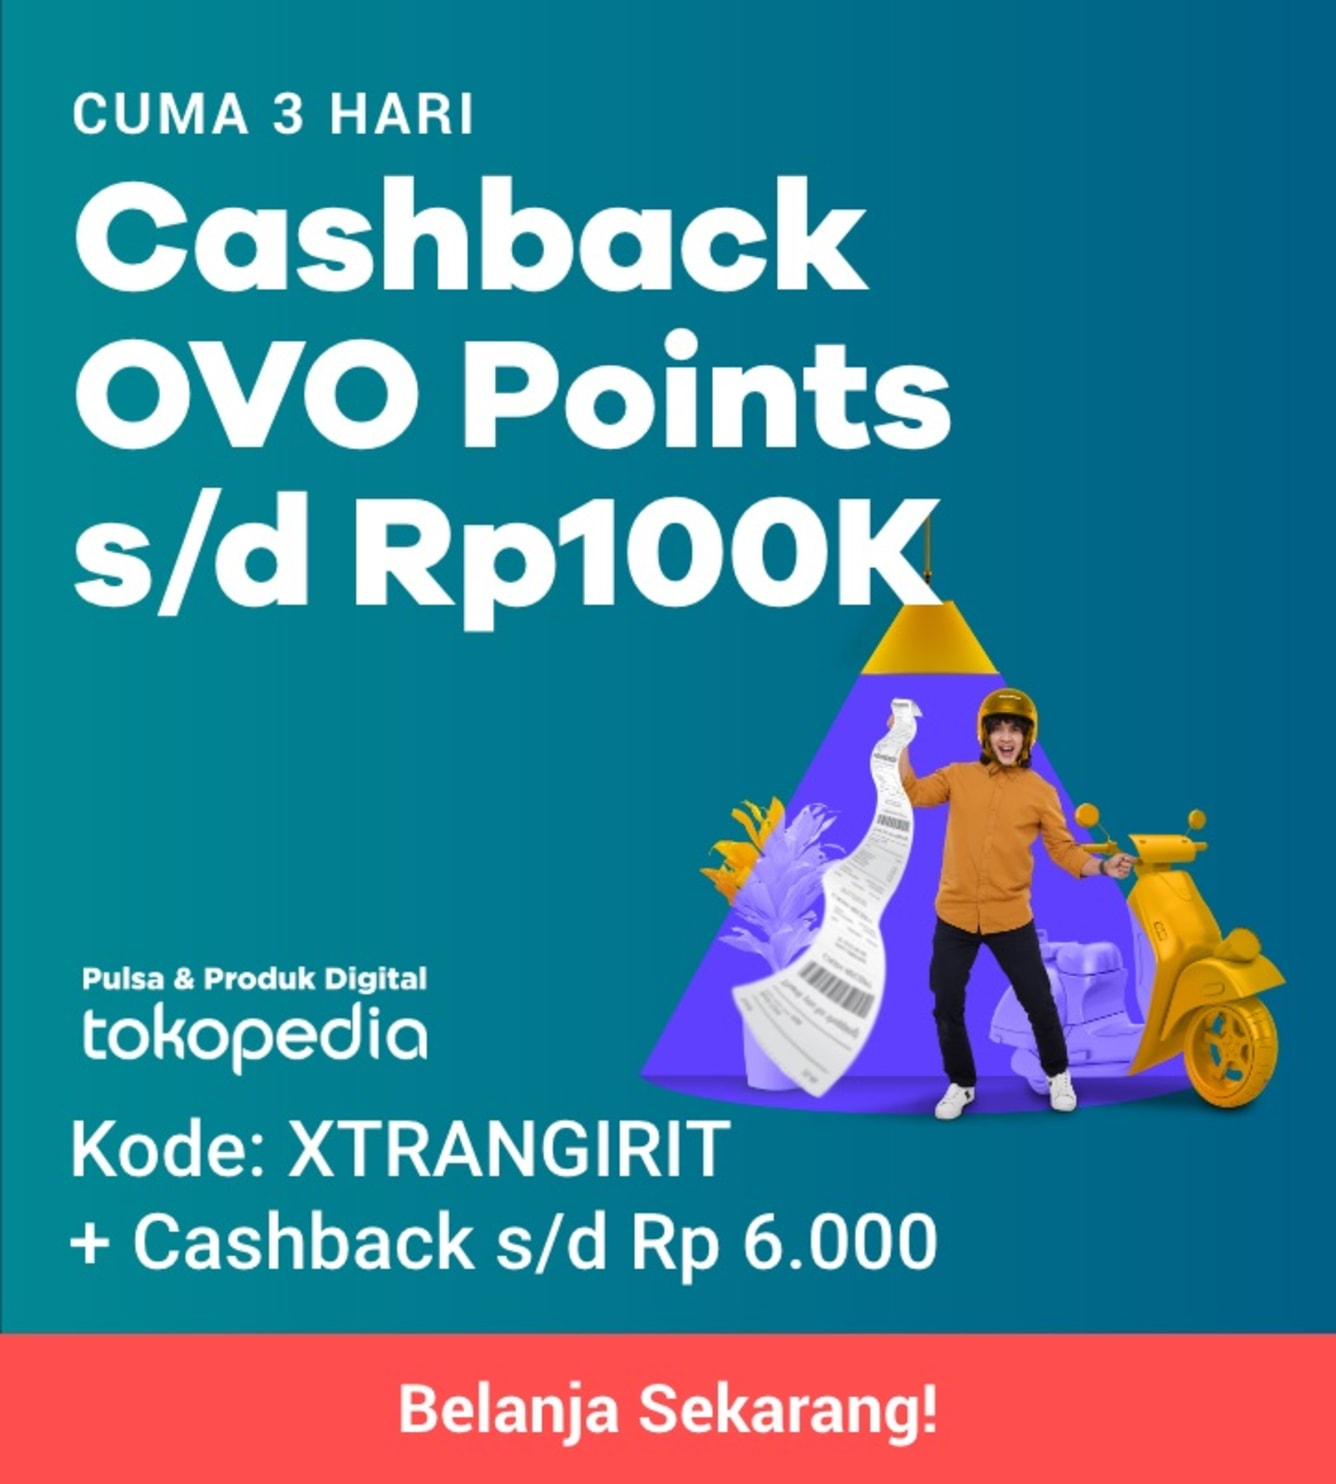 Week 38 - Promo Pulsa Tokopedia